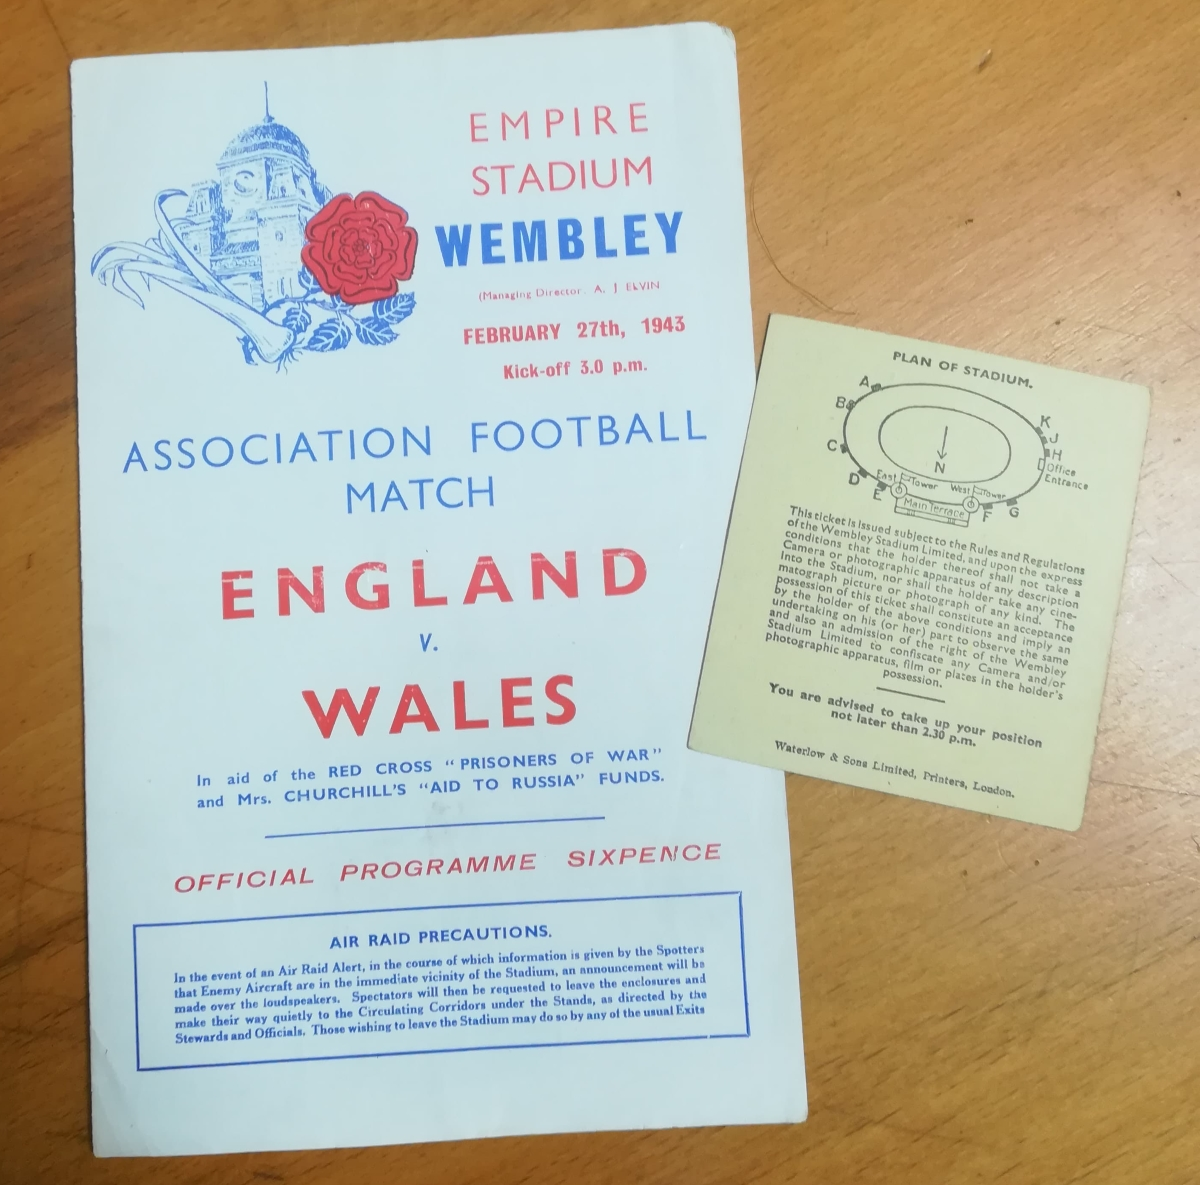 Wartime football memorabilia collector